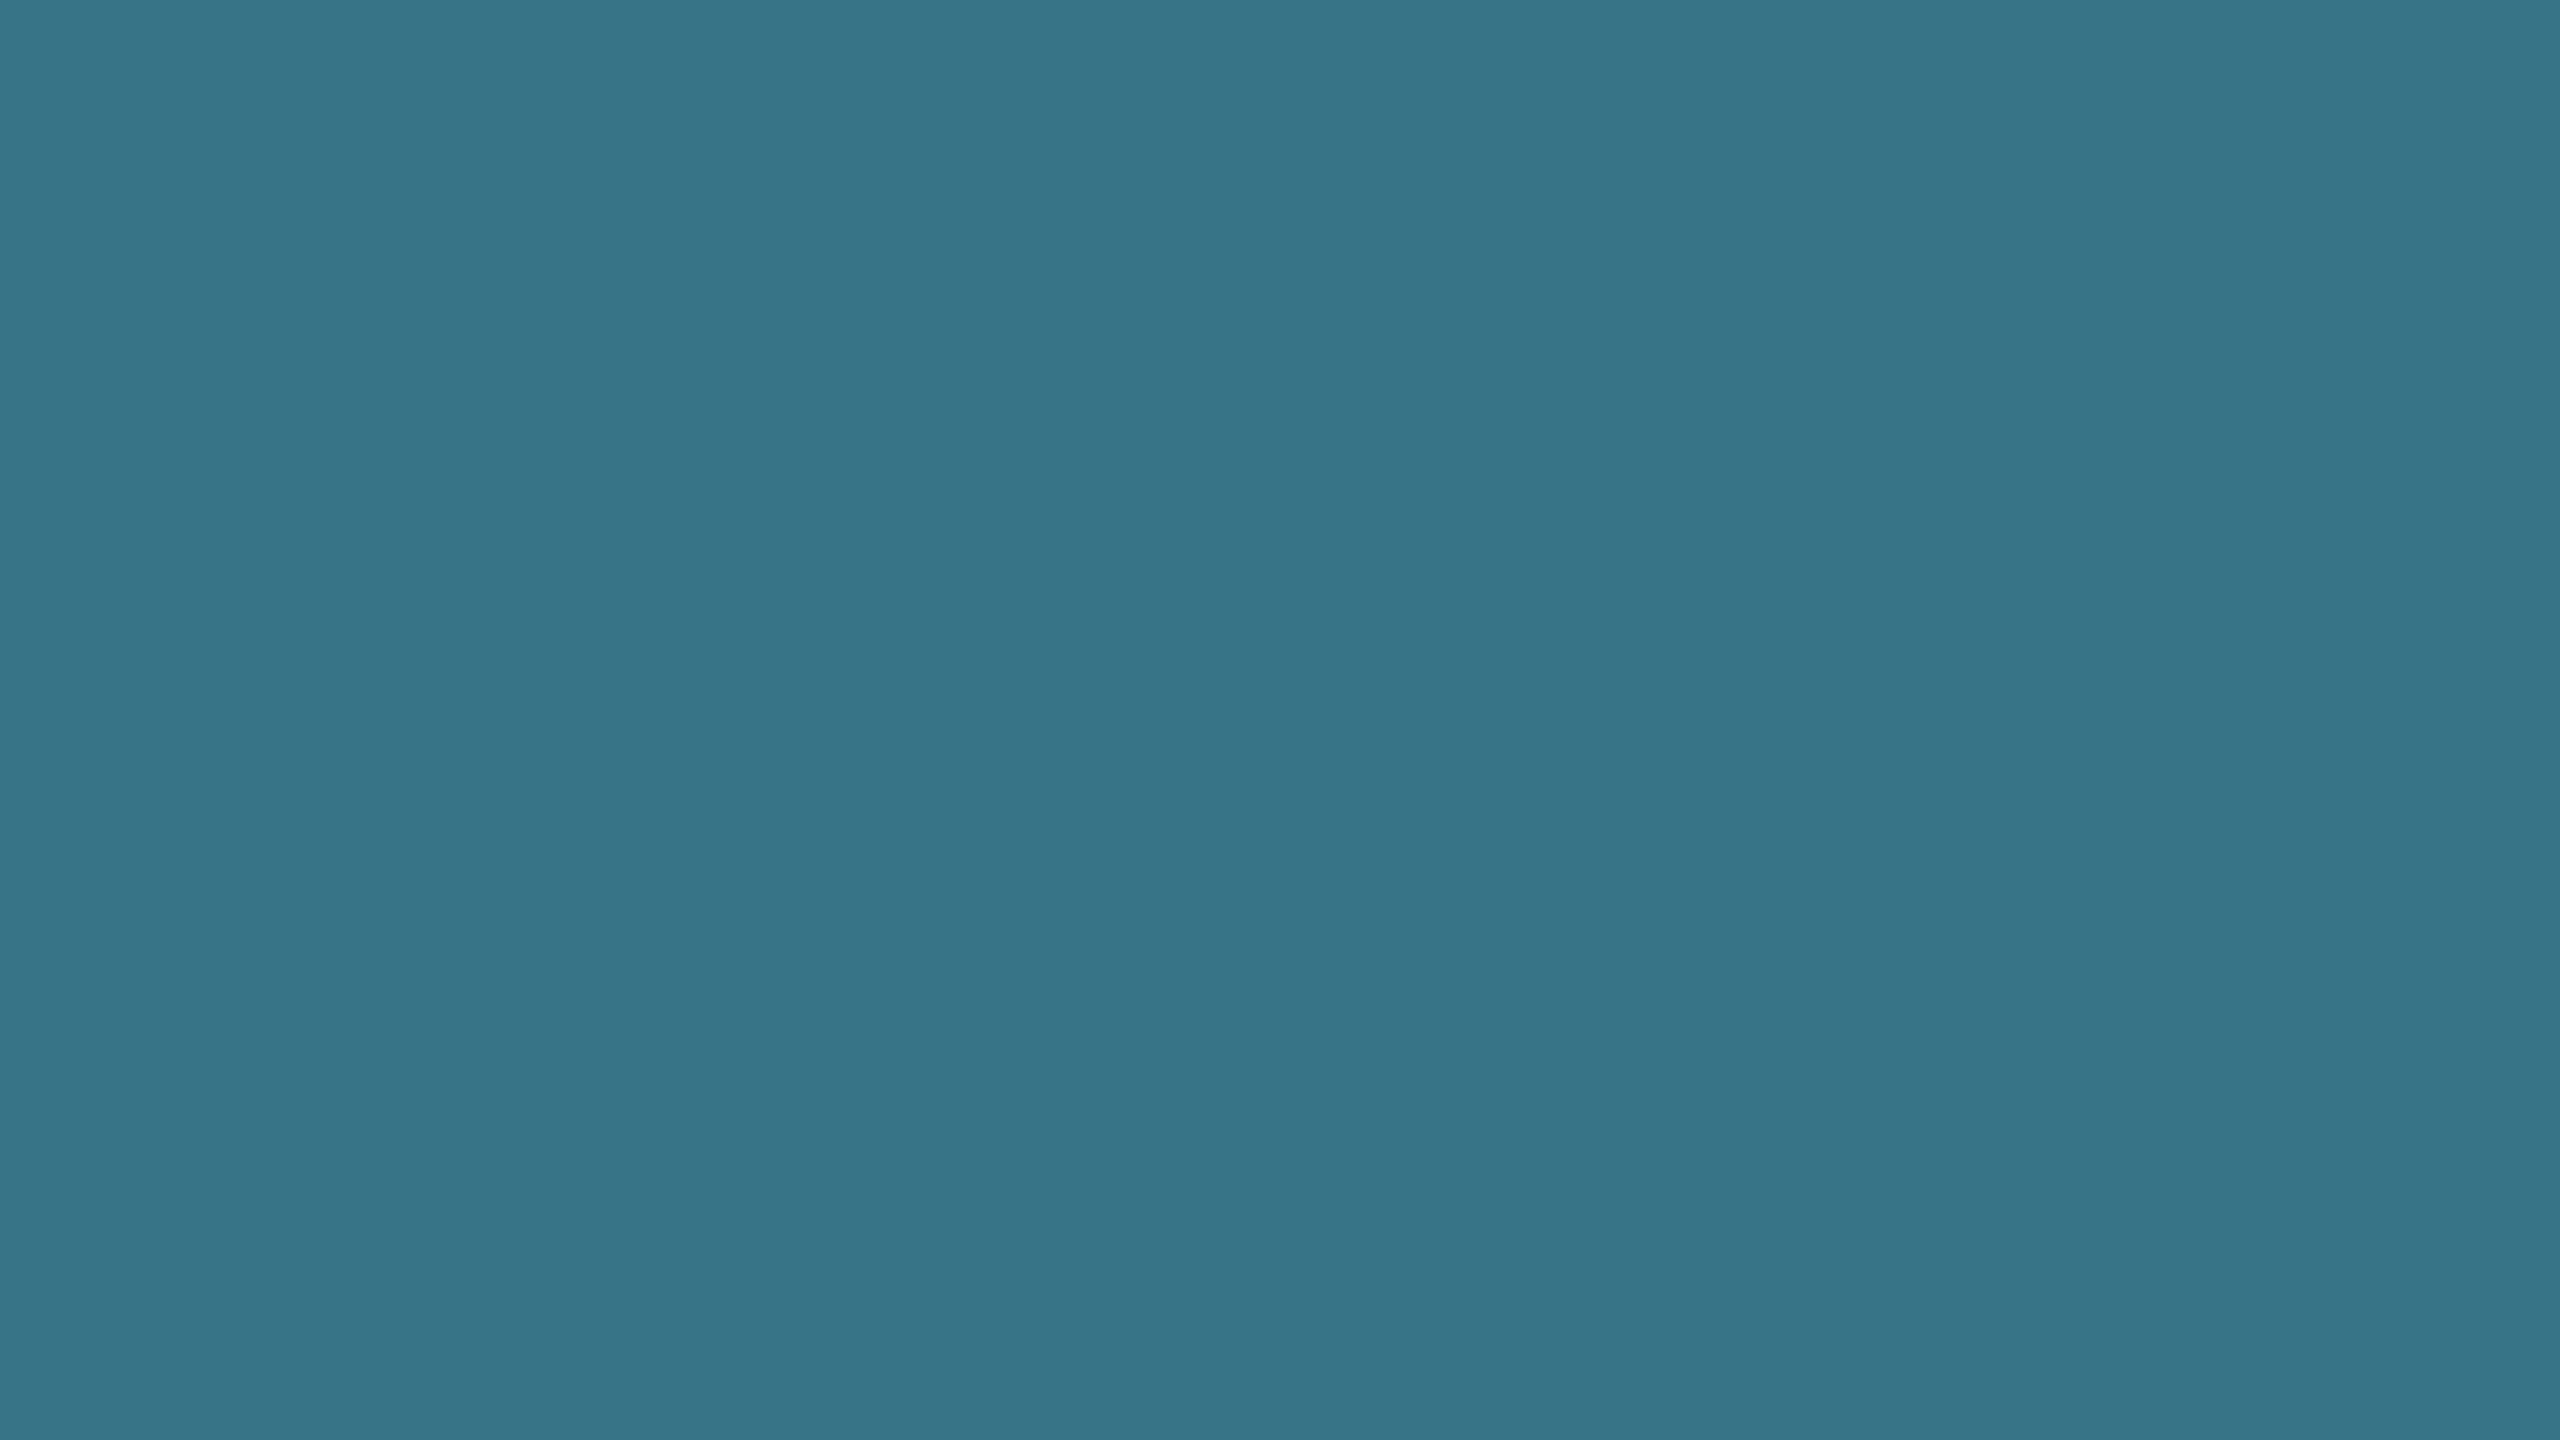 teal blue wallpaper 2015   Grasscloth Wallpaper 2560x1440